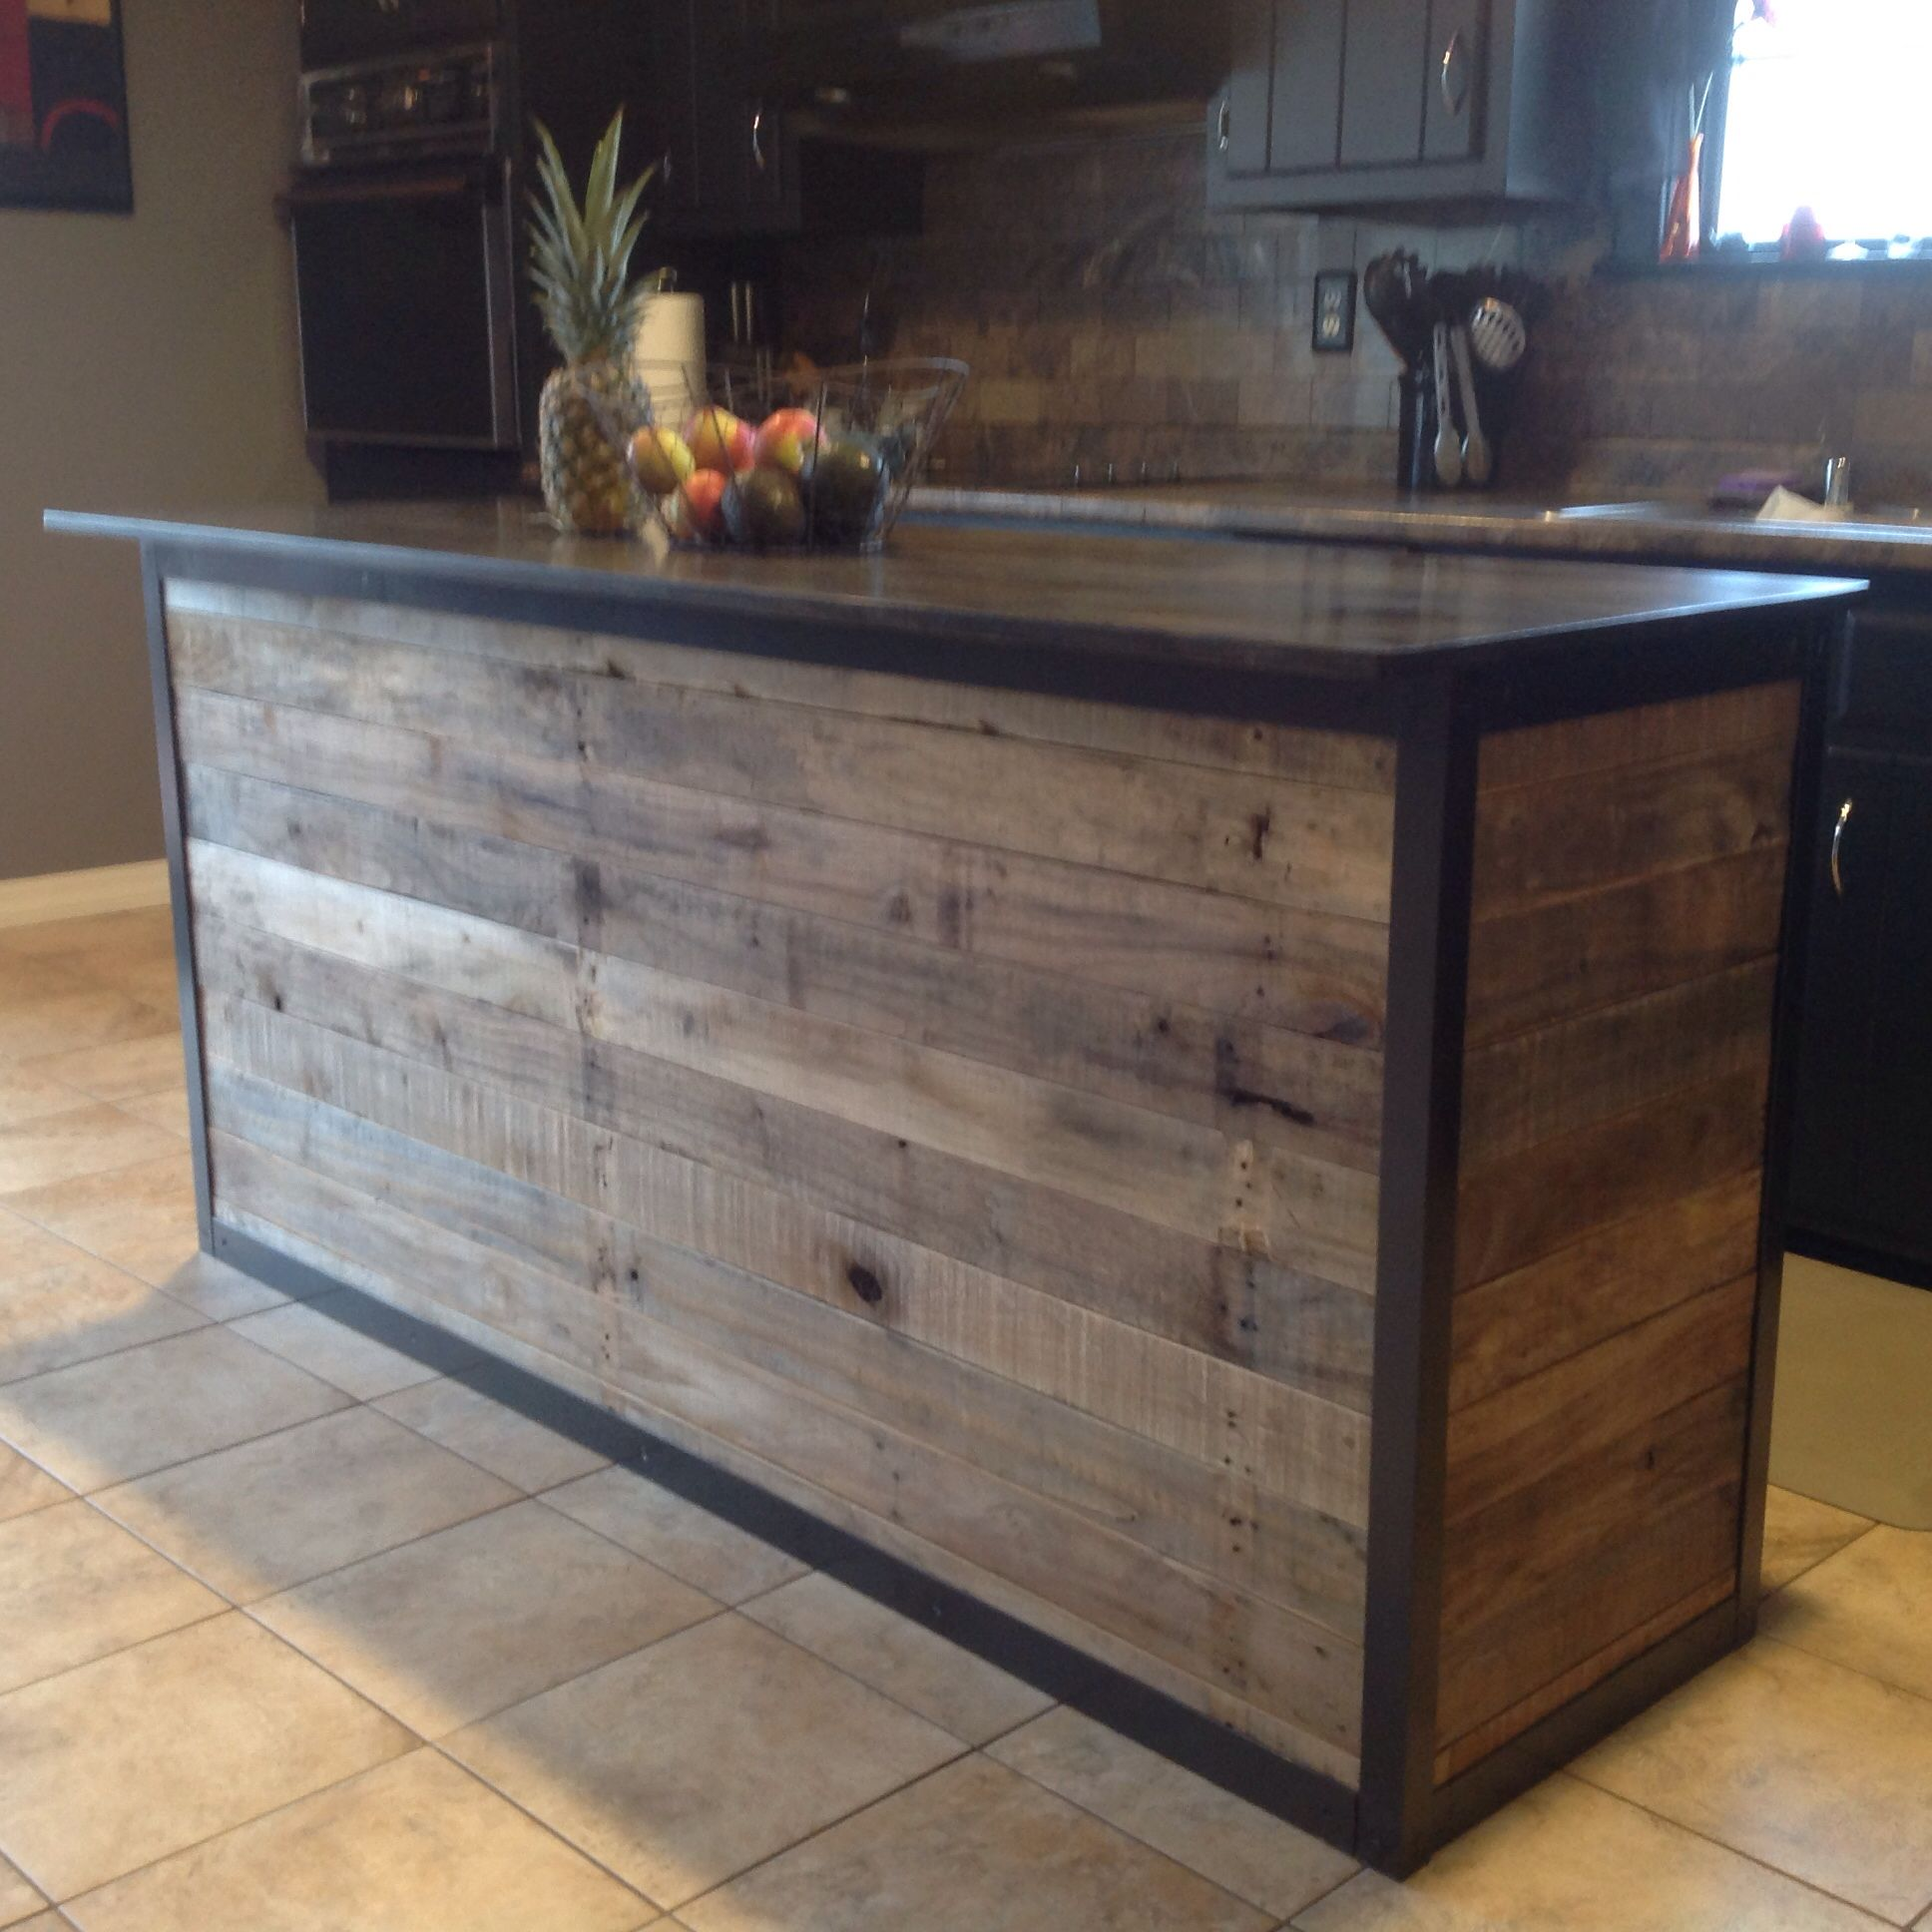 Diy kitchen island made from pallet wood house ideas for Pallet kitchen ideas